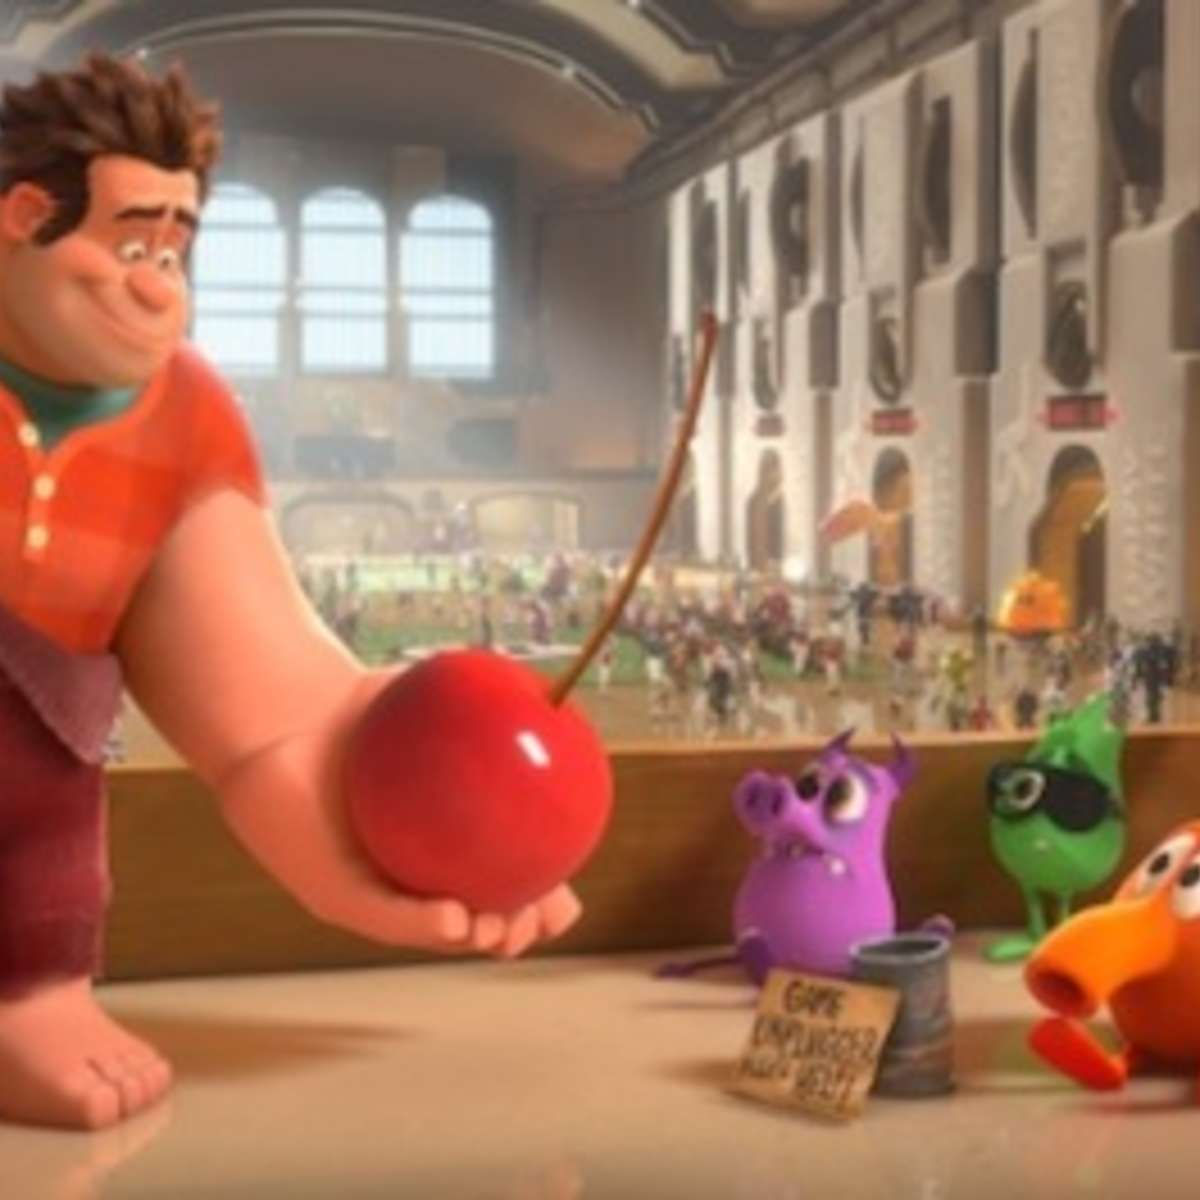 wreck-it-ralph-small.jpg